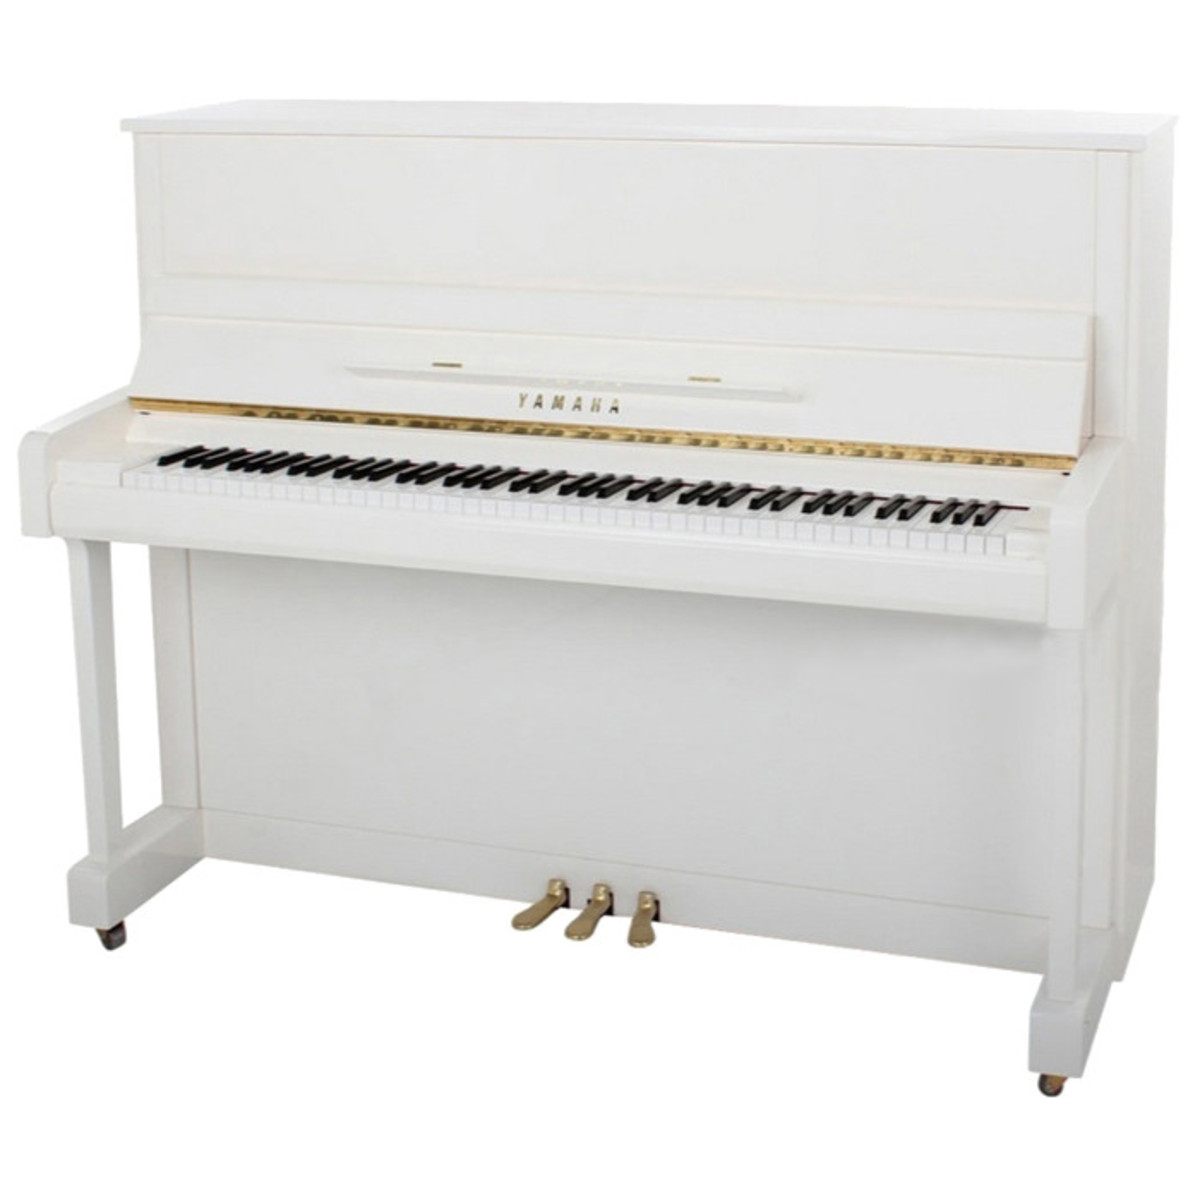 Yamaha b2 upright acoustic piano polished white at for Yamaha piano upright